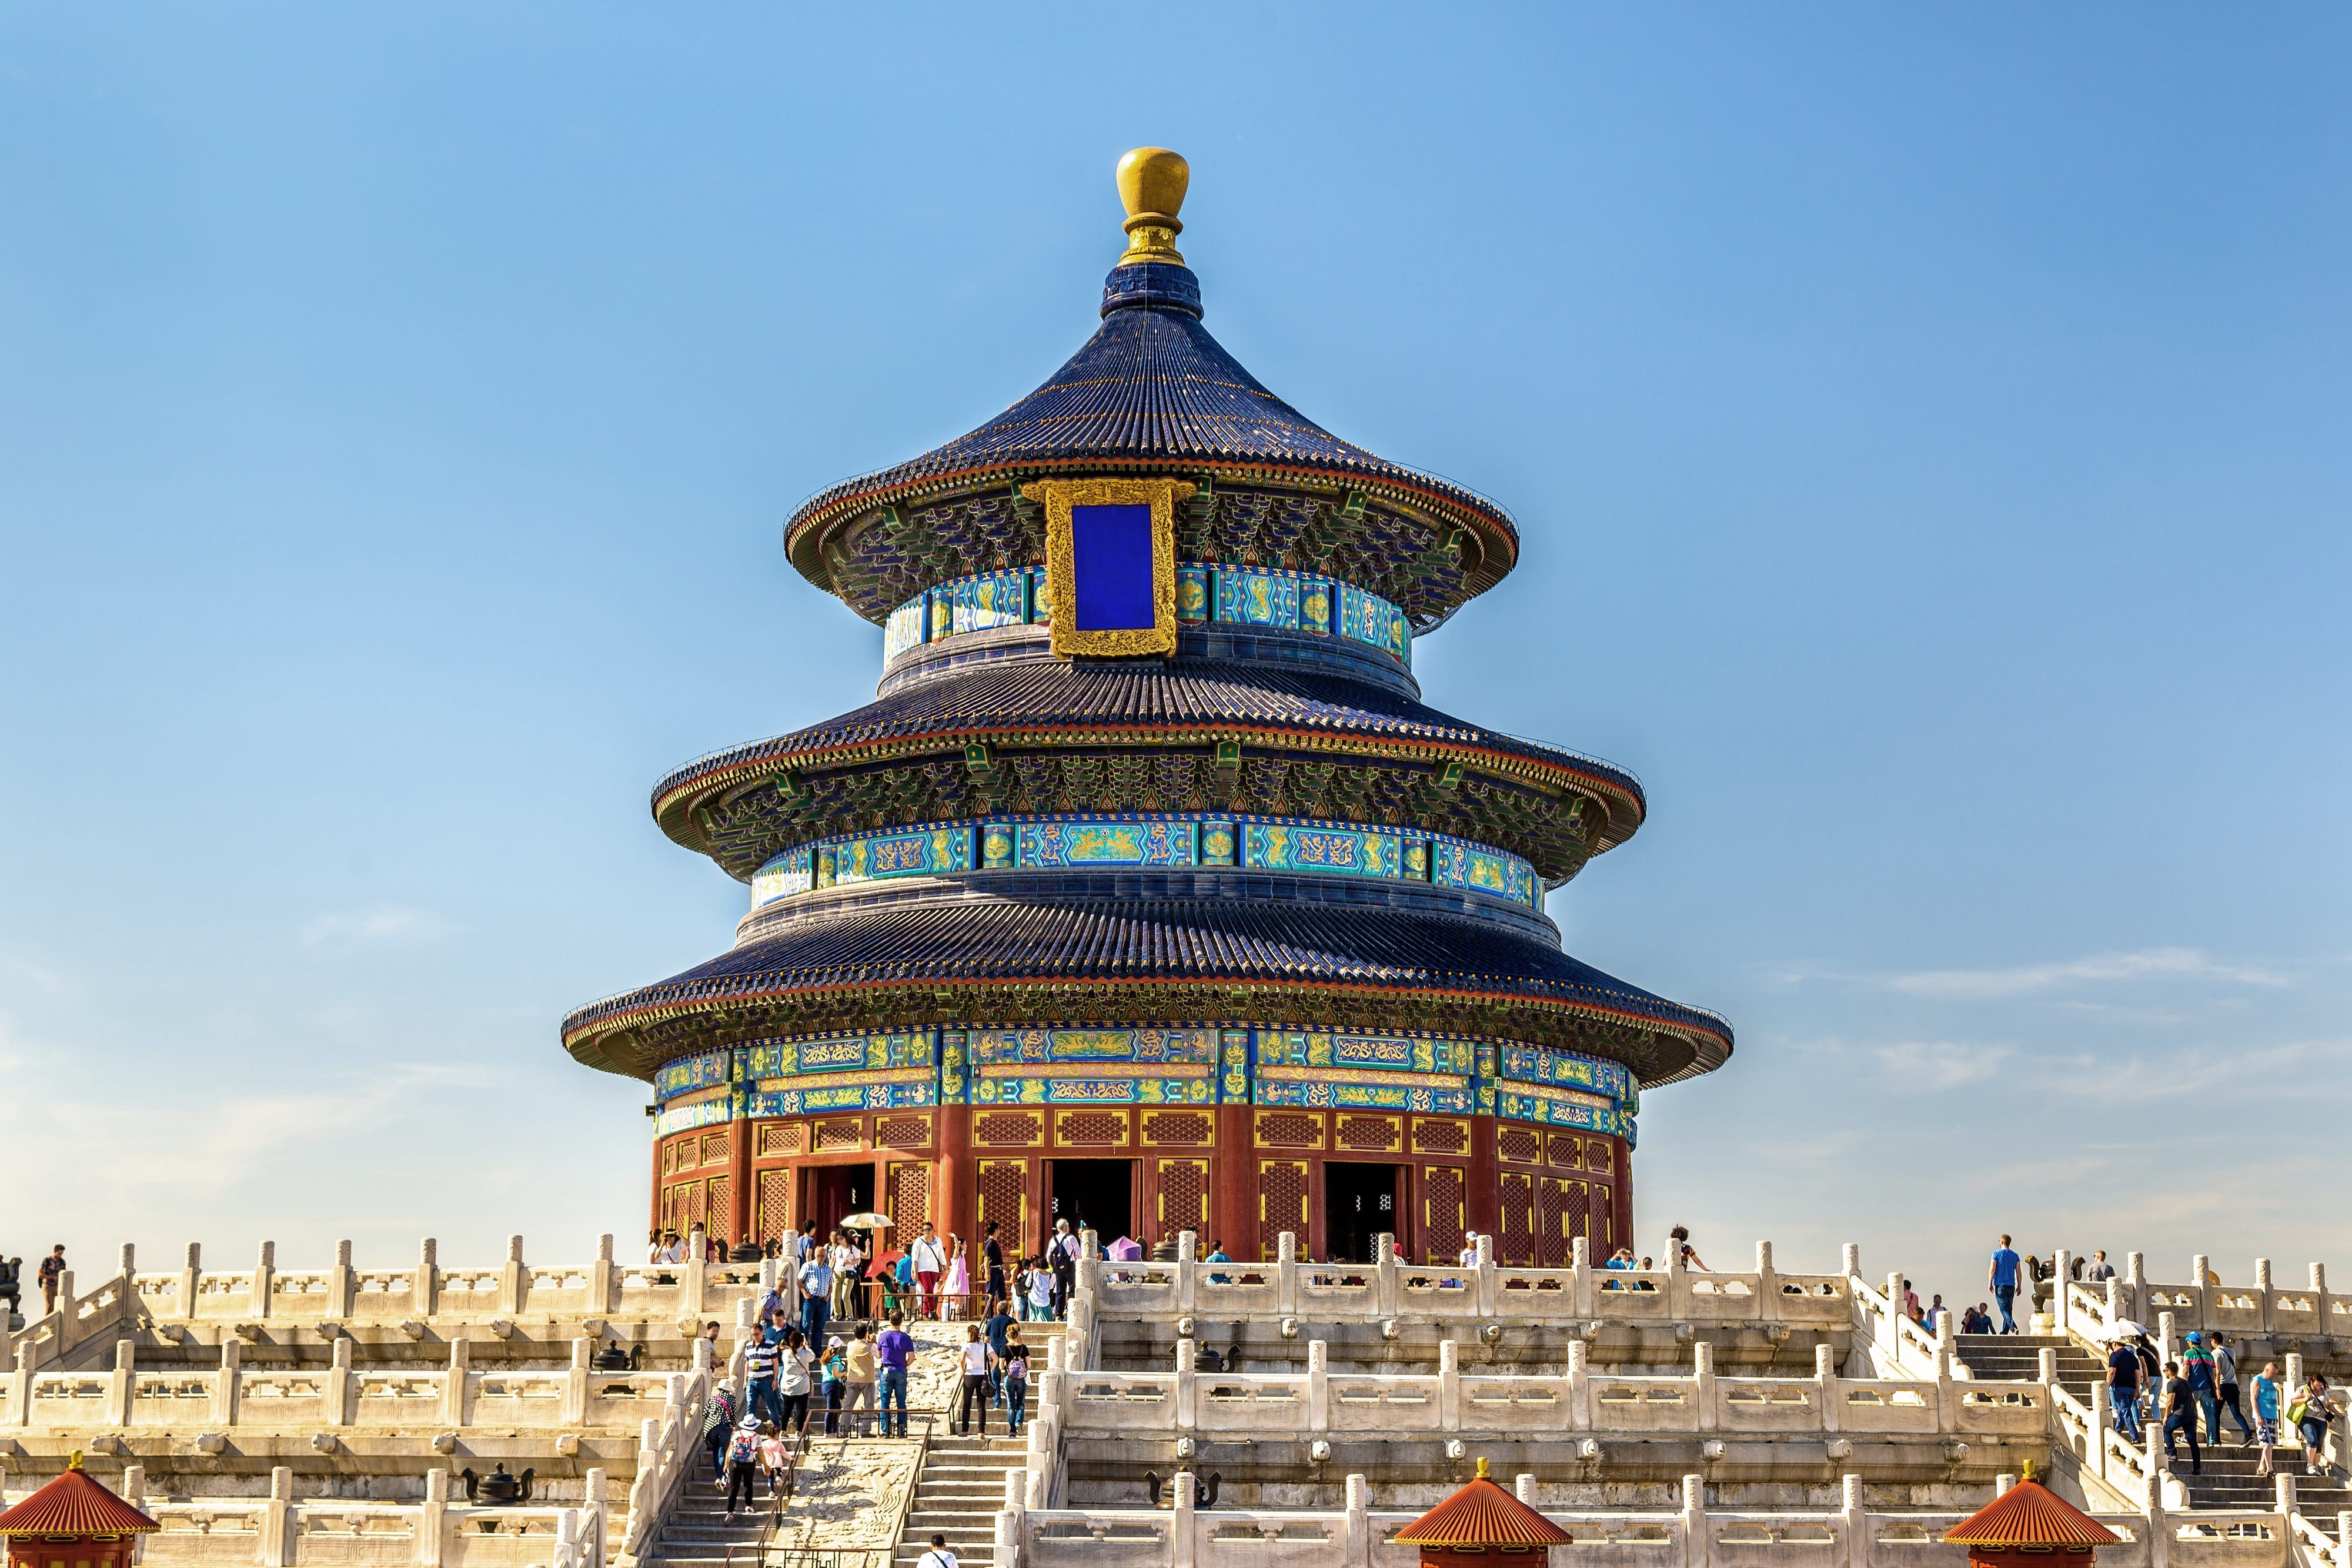 The exterior of the Temple of Heaven